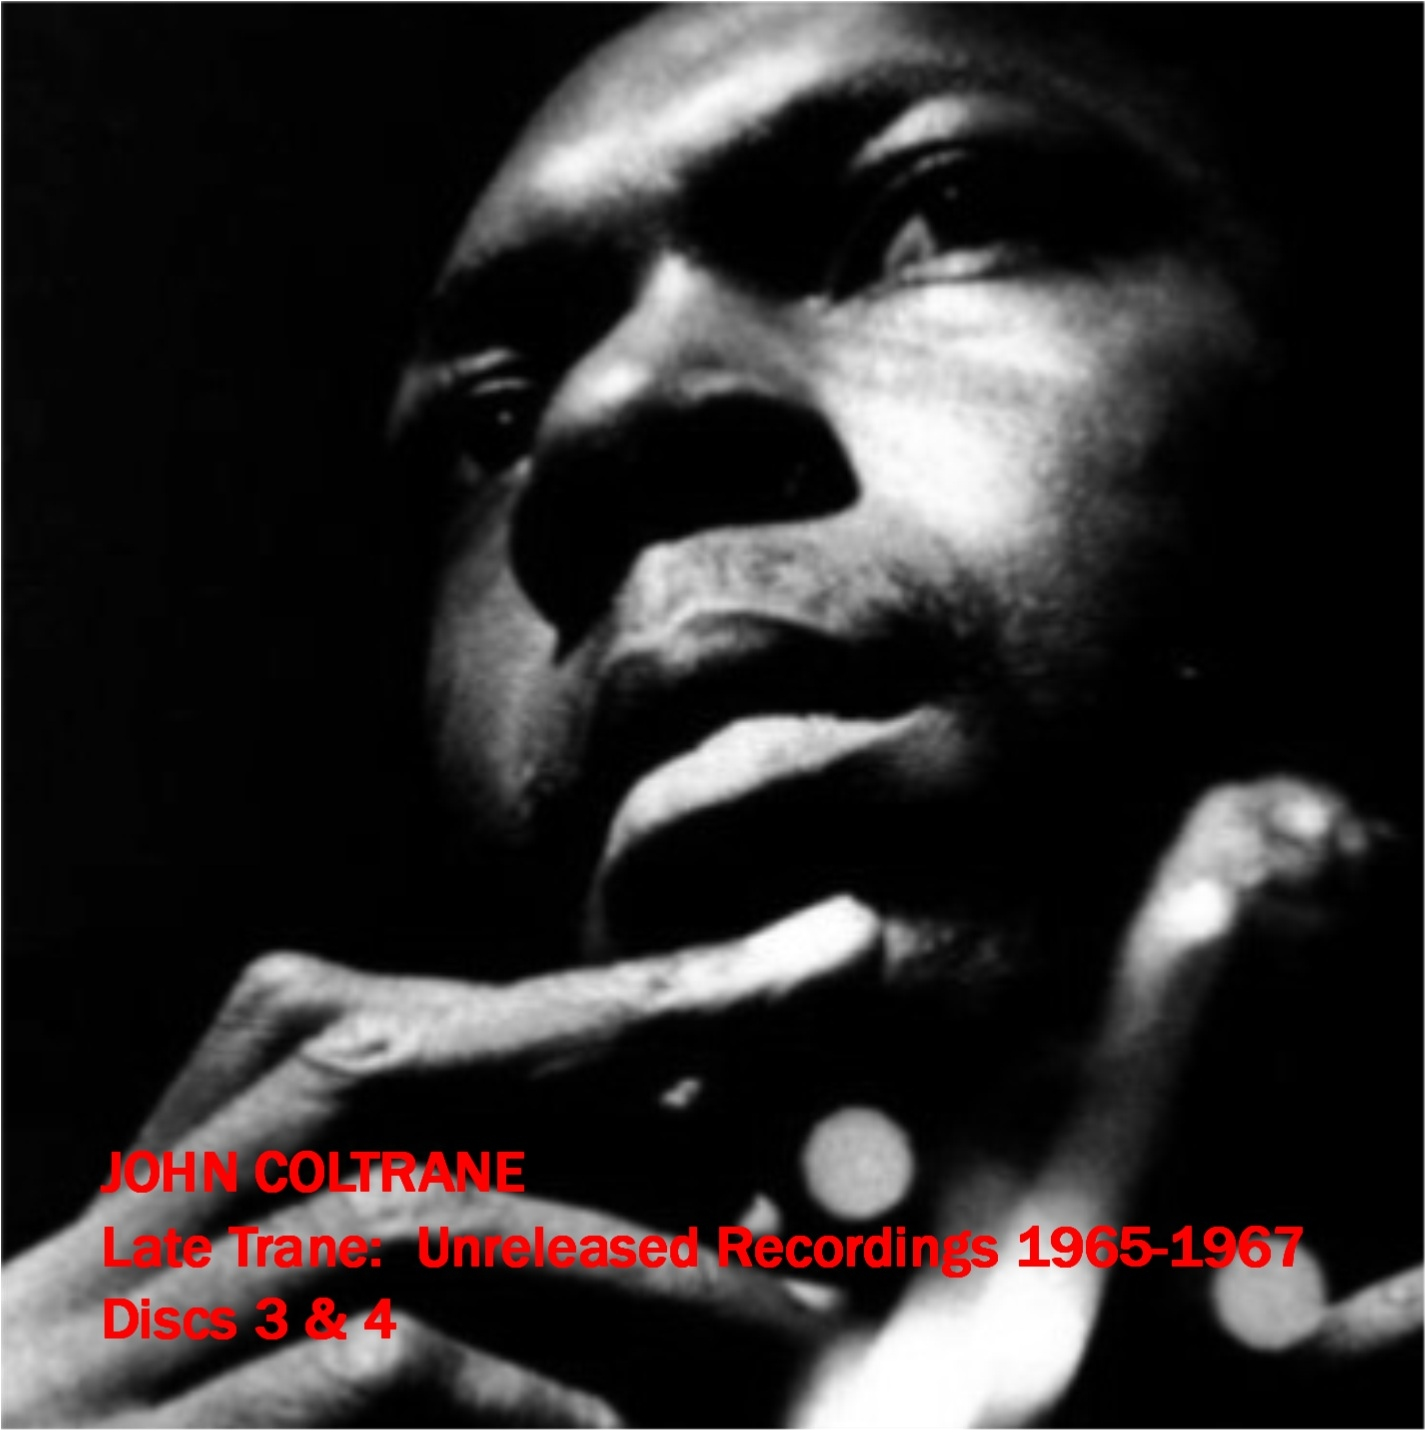 JohnColtrane1965-1967LateTraneCollection_pt1 (2).jpg